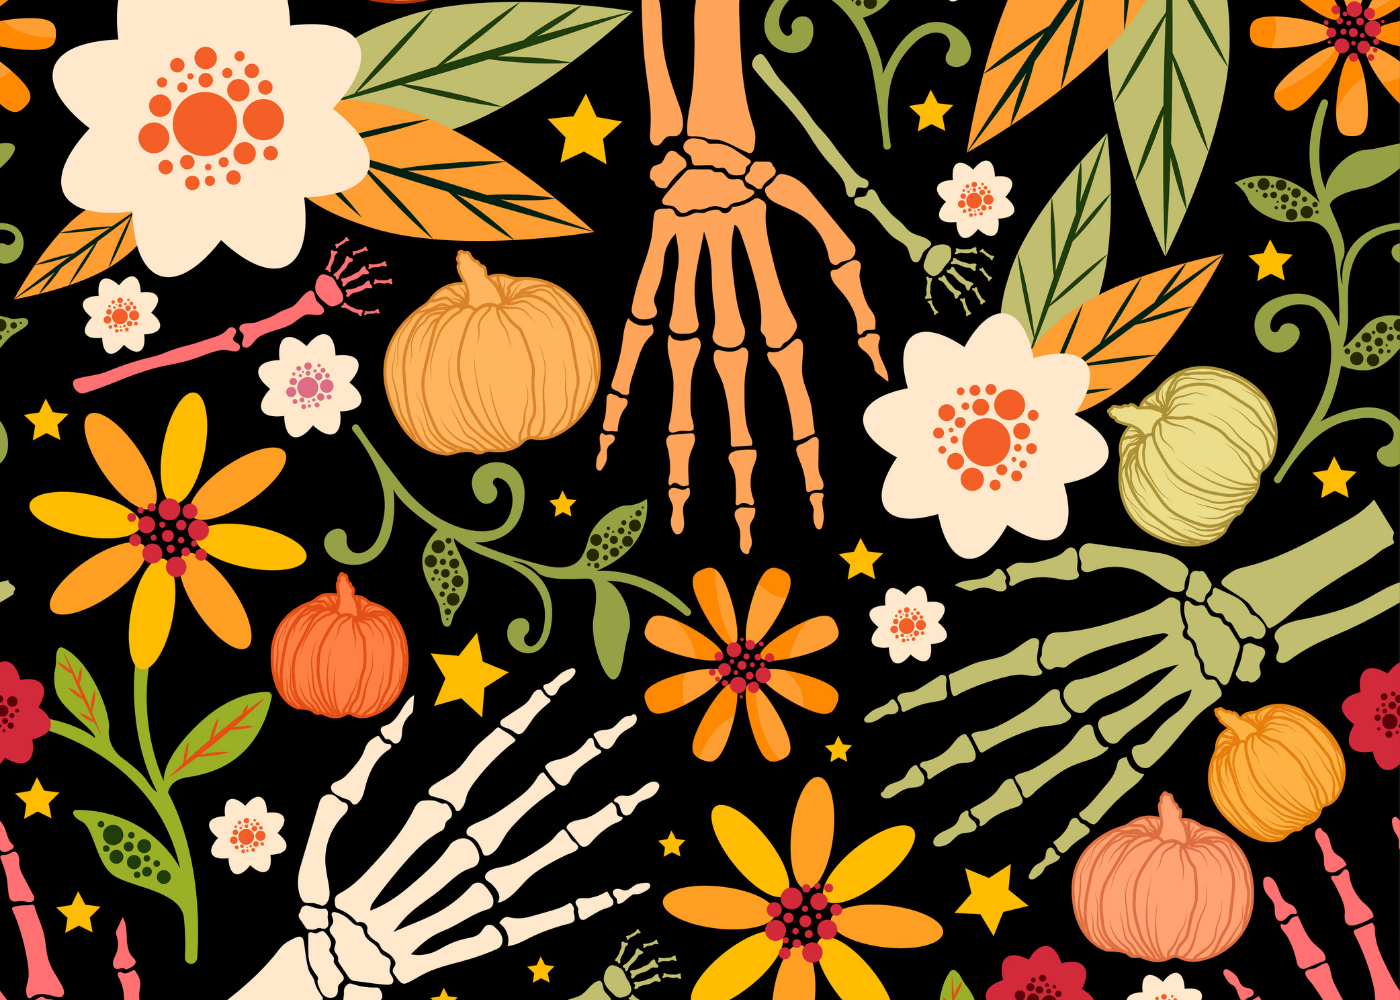 Illustration of skeleton hands with flowers